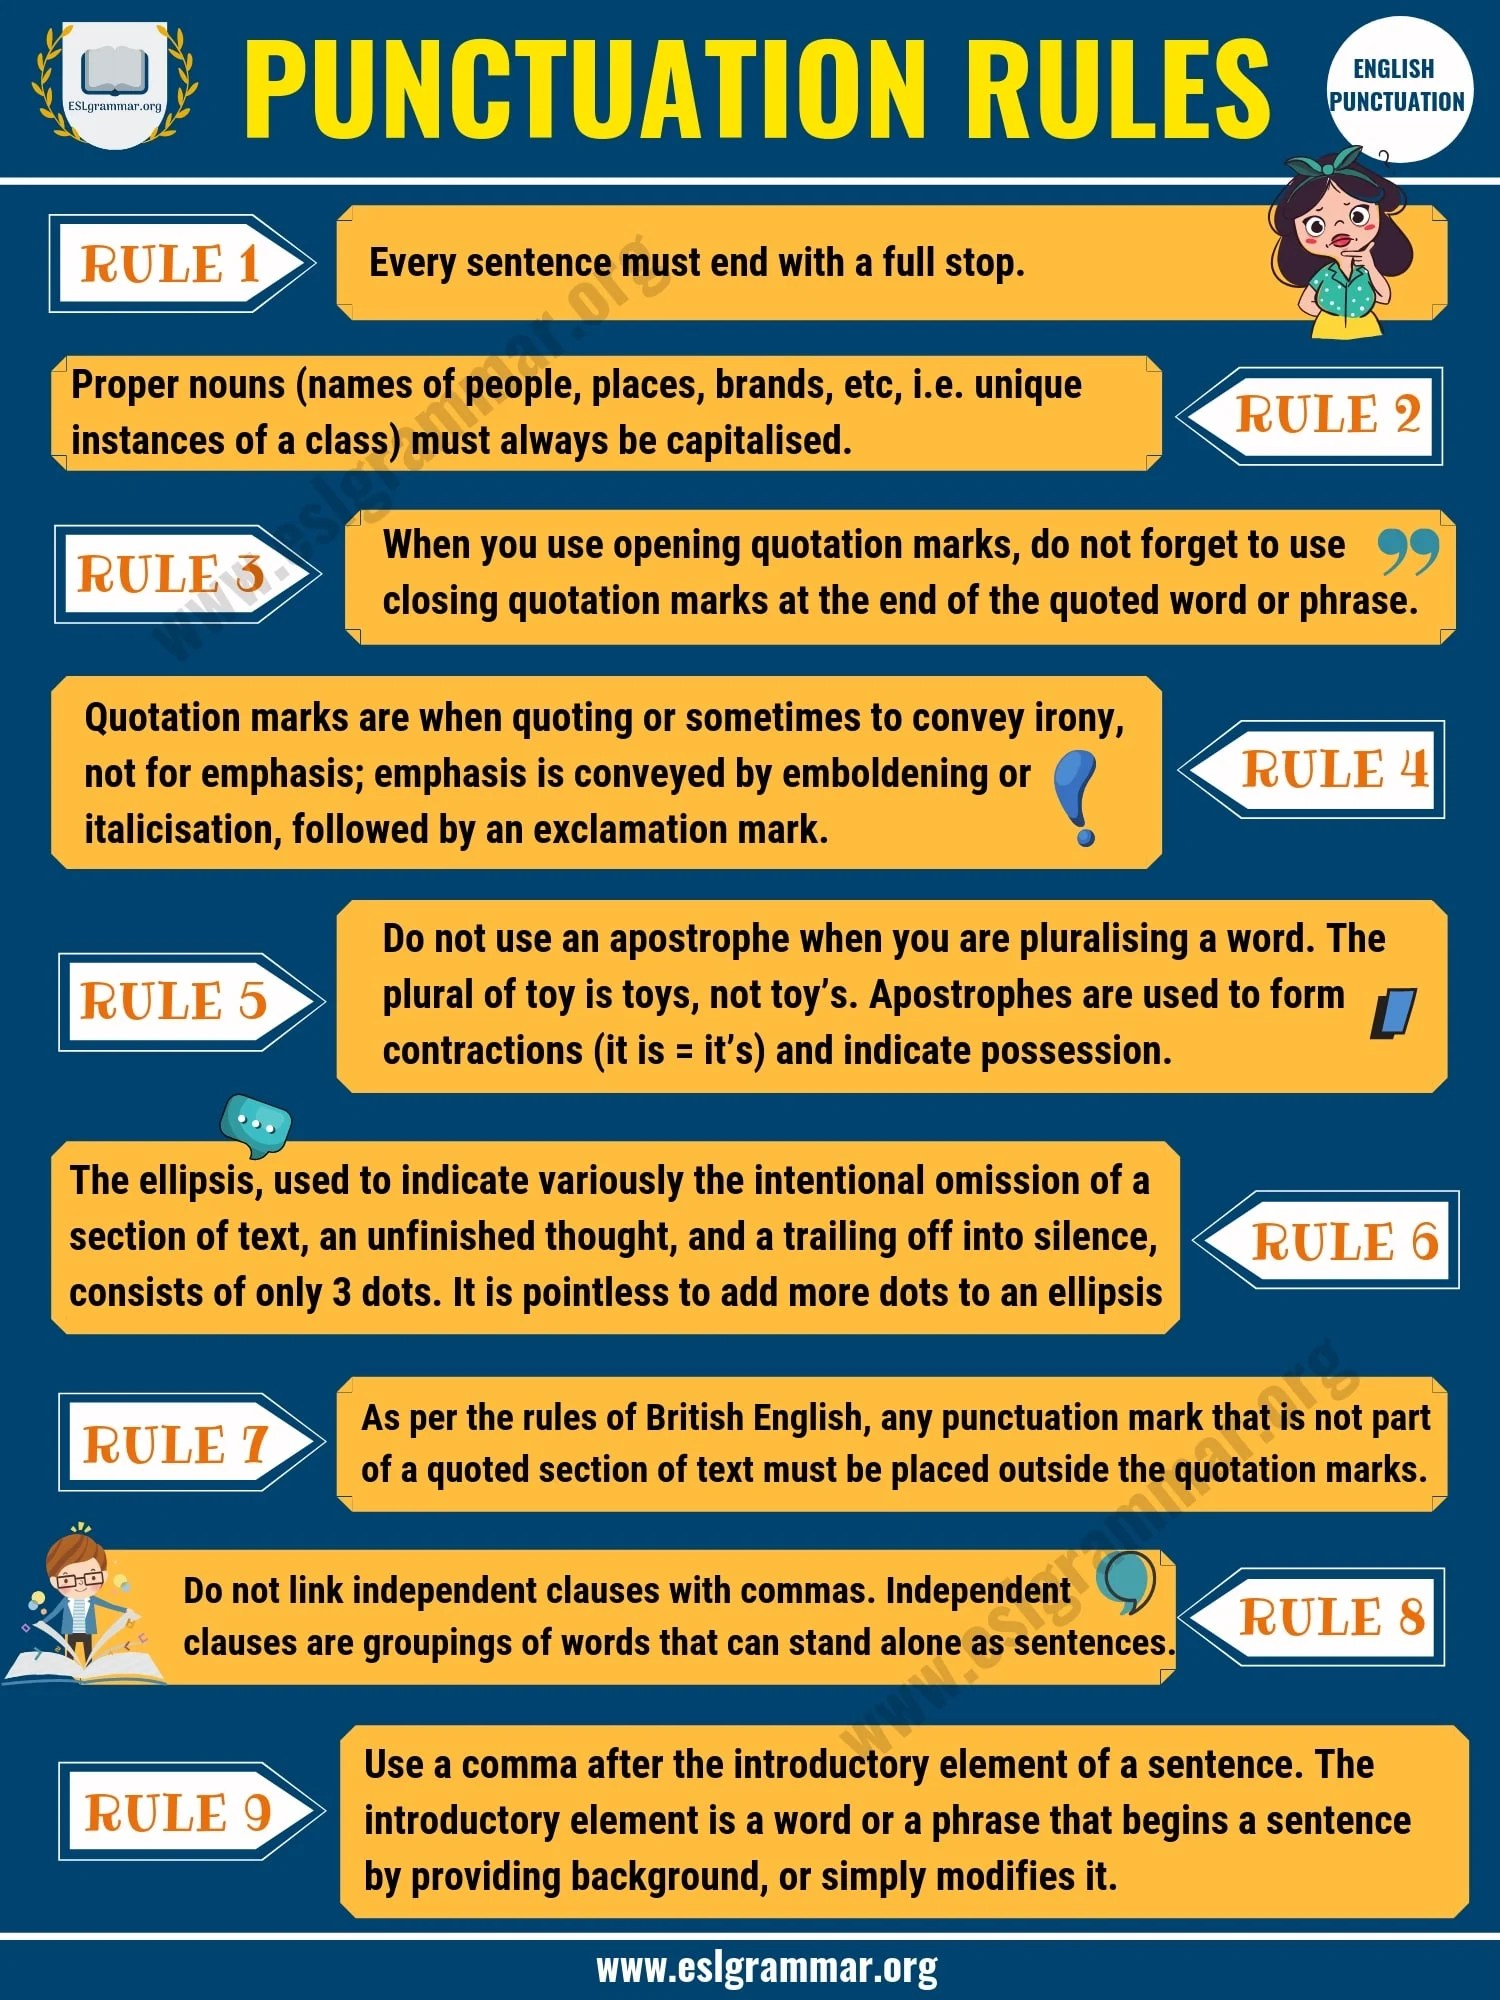 Punctuation Rules 9 Important Rules You Must Know